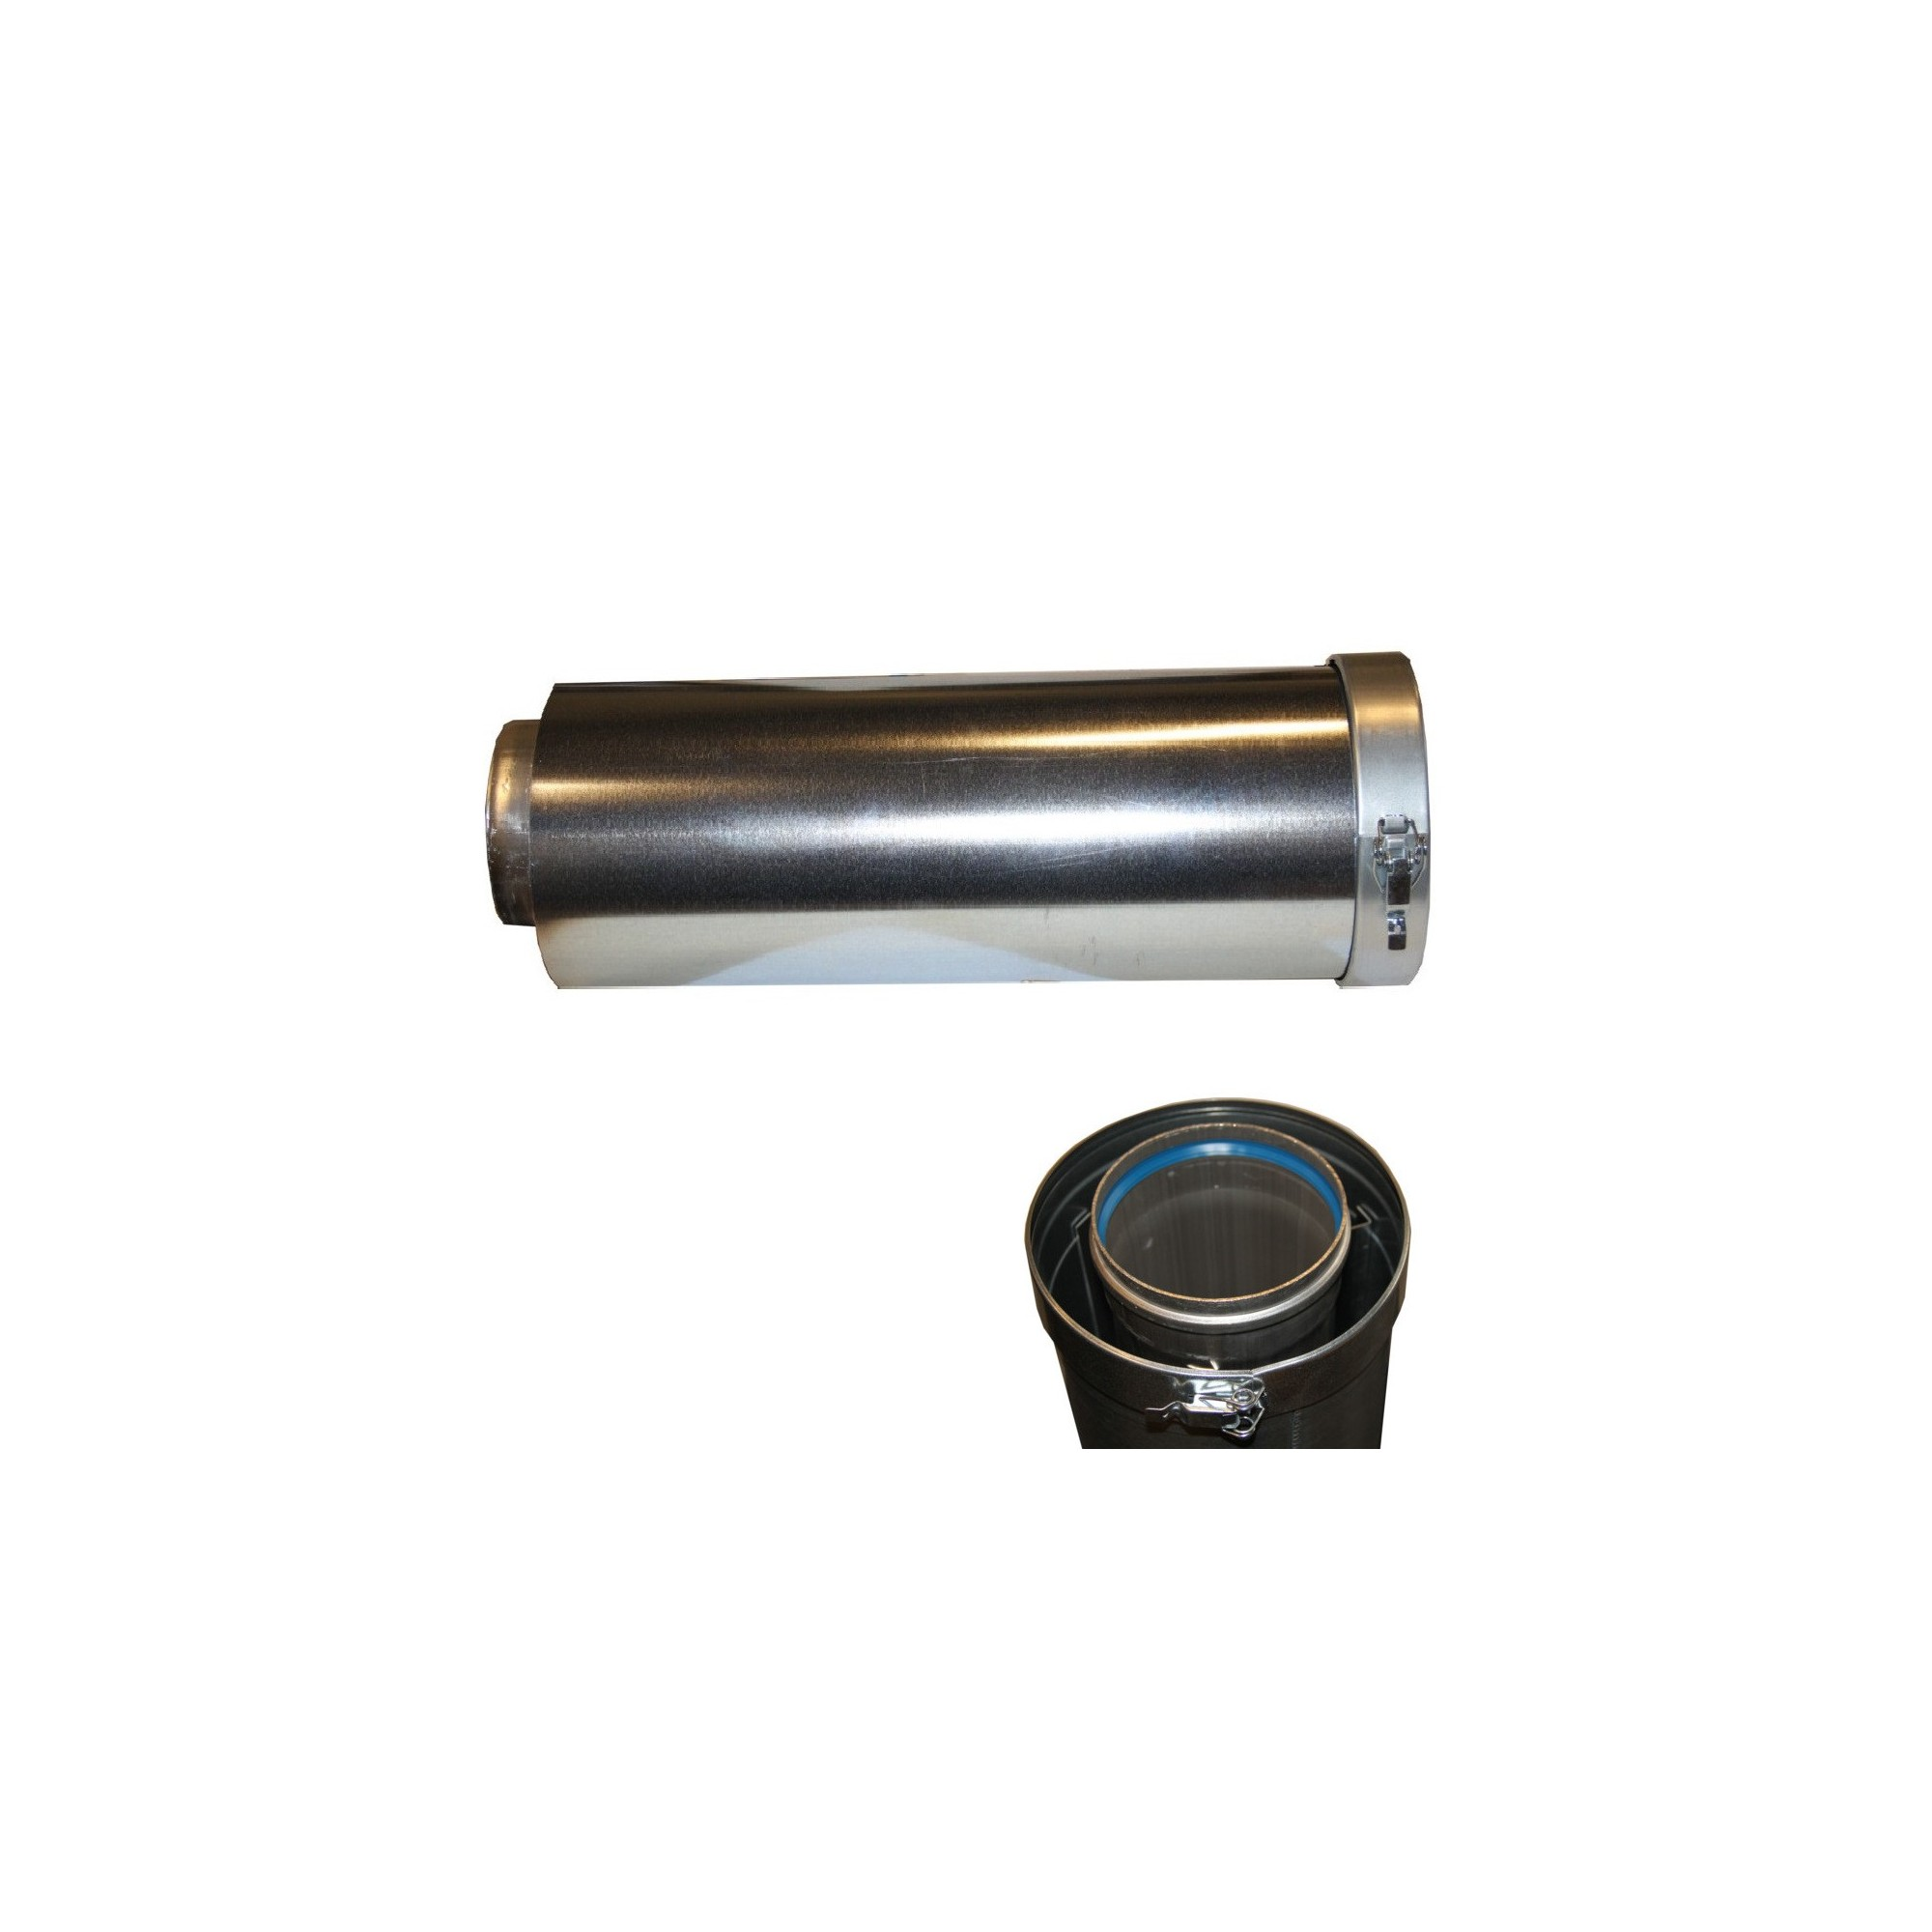 BUSE CONC ADAPTABLE 130/200 L 500